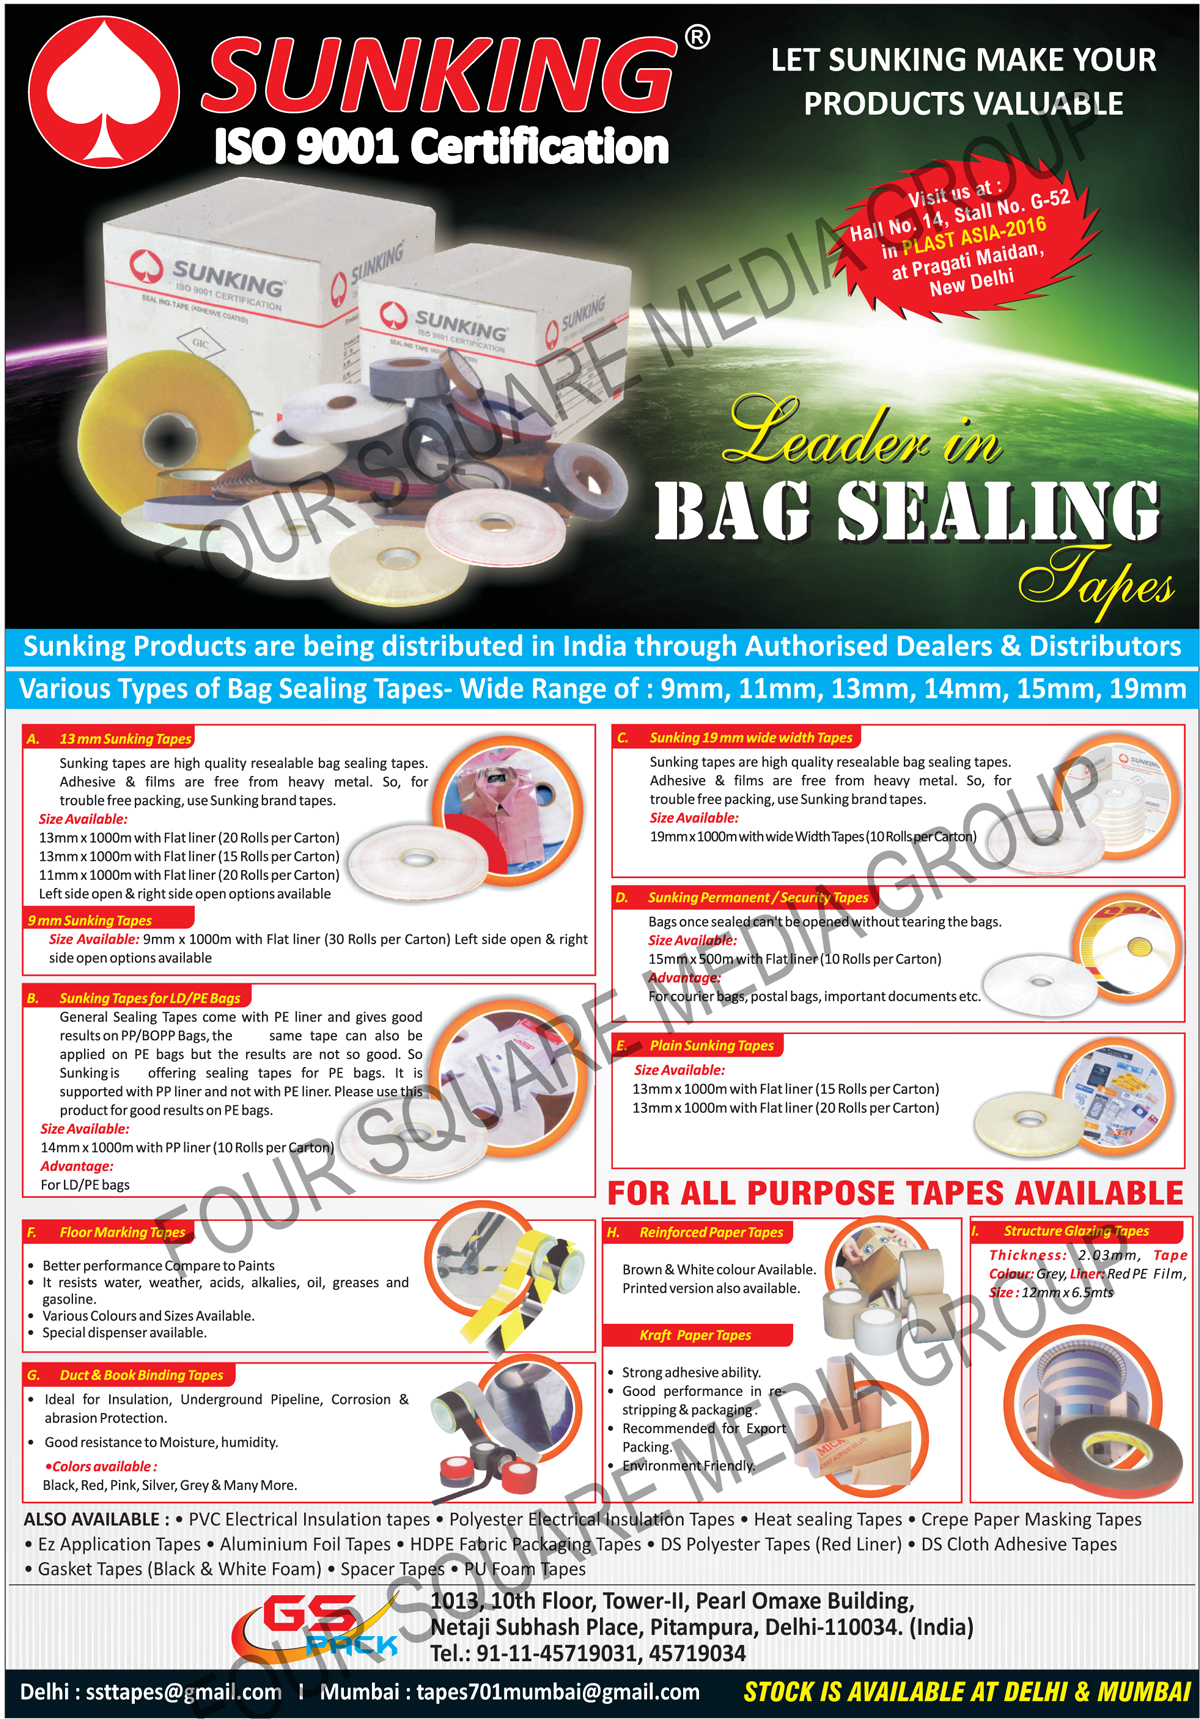 Bag Sealing Tapes, LD Bag Sealing Tapes, PE Bag Sealing Machines, Floor Marking Tapes, Duct Tapes, Book Binding Tapes, Wide Width Tapes, Permanent Tapes, Security Tapes, Plain Tapes, Reinforced Paper Tapes, Structure Glazing Tapes, Kraft Paper Tapes, PVC Electrical Insulation Tapes, Polyester Electrical Insulation Tapes, Heat Sealing Tapes, Crepe Paper Masking Tapes, Ez Application Tapes, Aluminium Foil Tapes, HDPE Fabric Packaging Tapes, DS Polyester Tapes, DS Cloth Adhesive Tapes, Black Foam Gasket Tapes, White Foam Gasket Tapes, Spacer Tapes, PU Foam Tapes